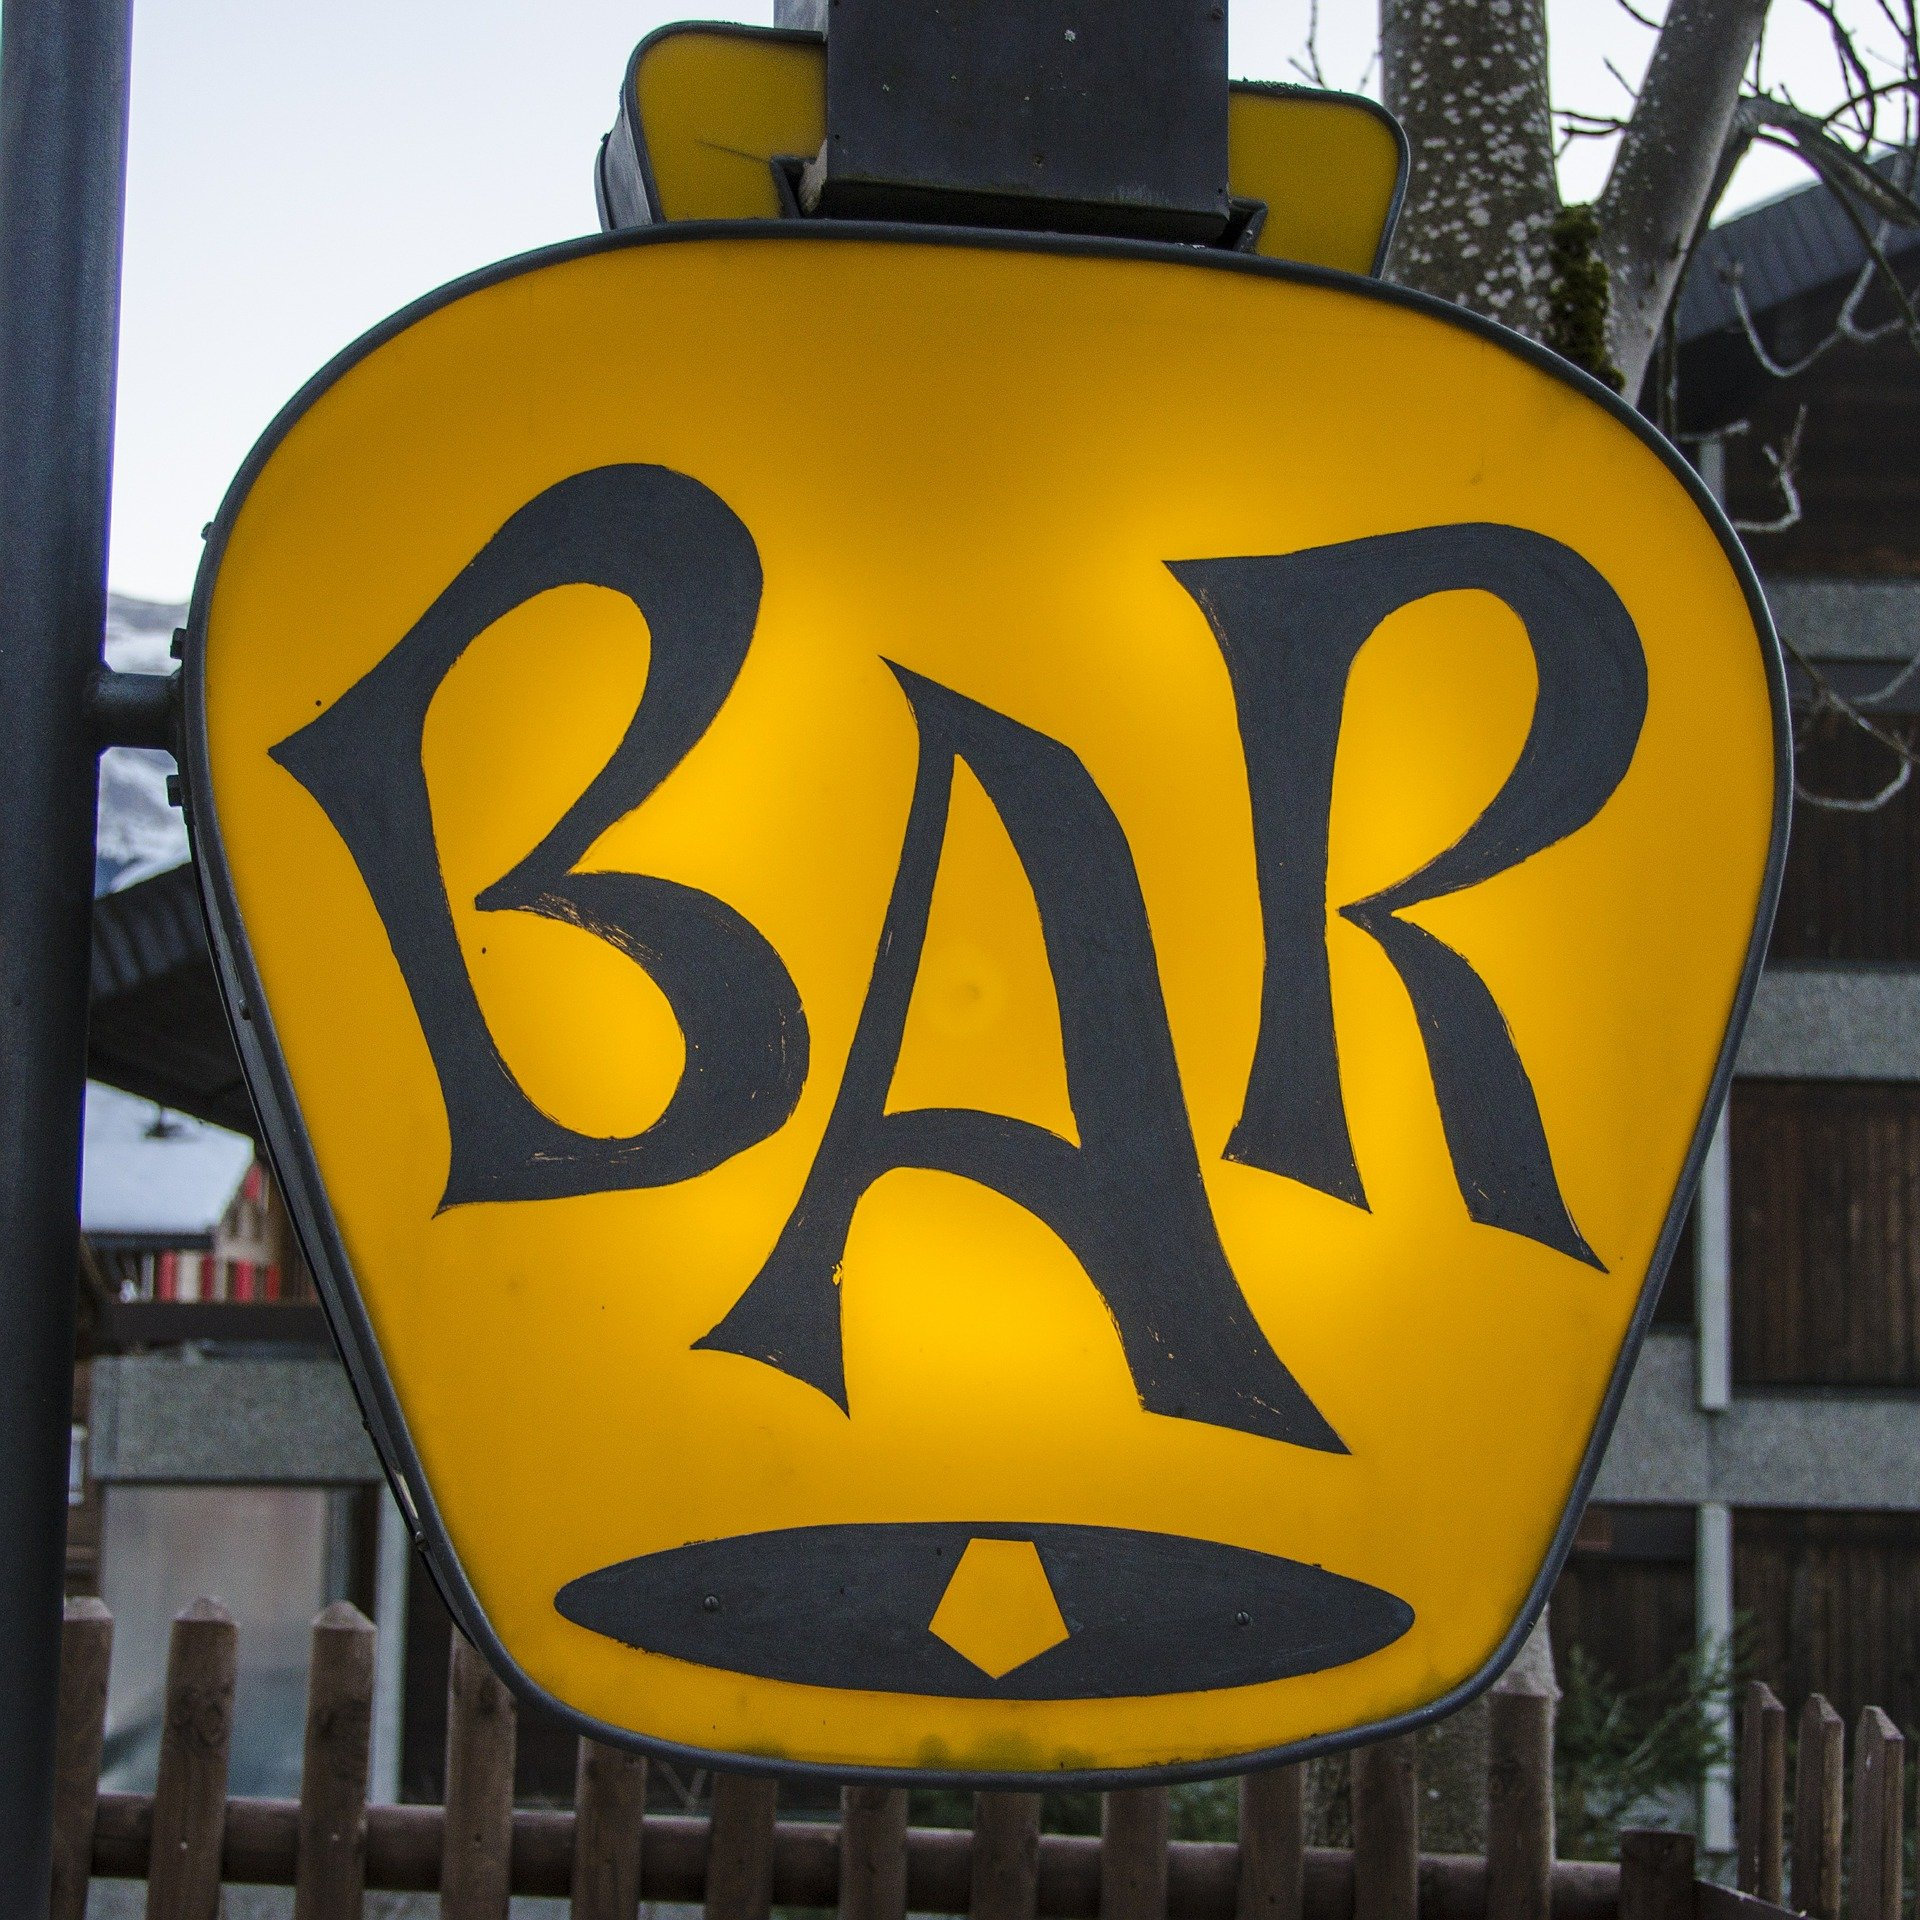 Pictured - A lounge club sign | Source: Pixabay